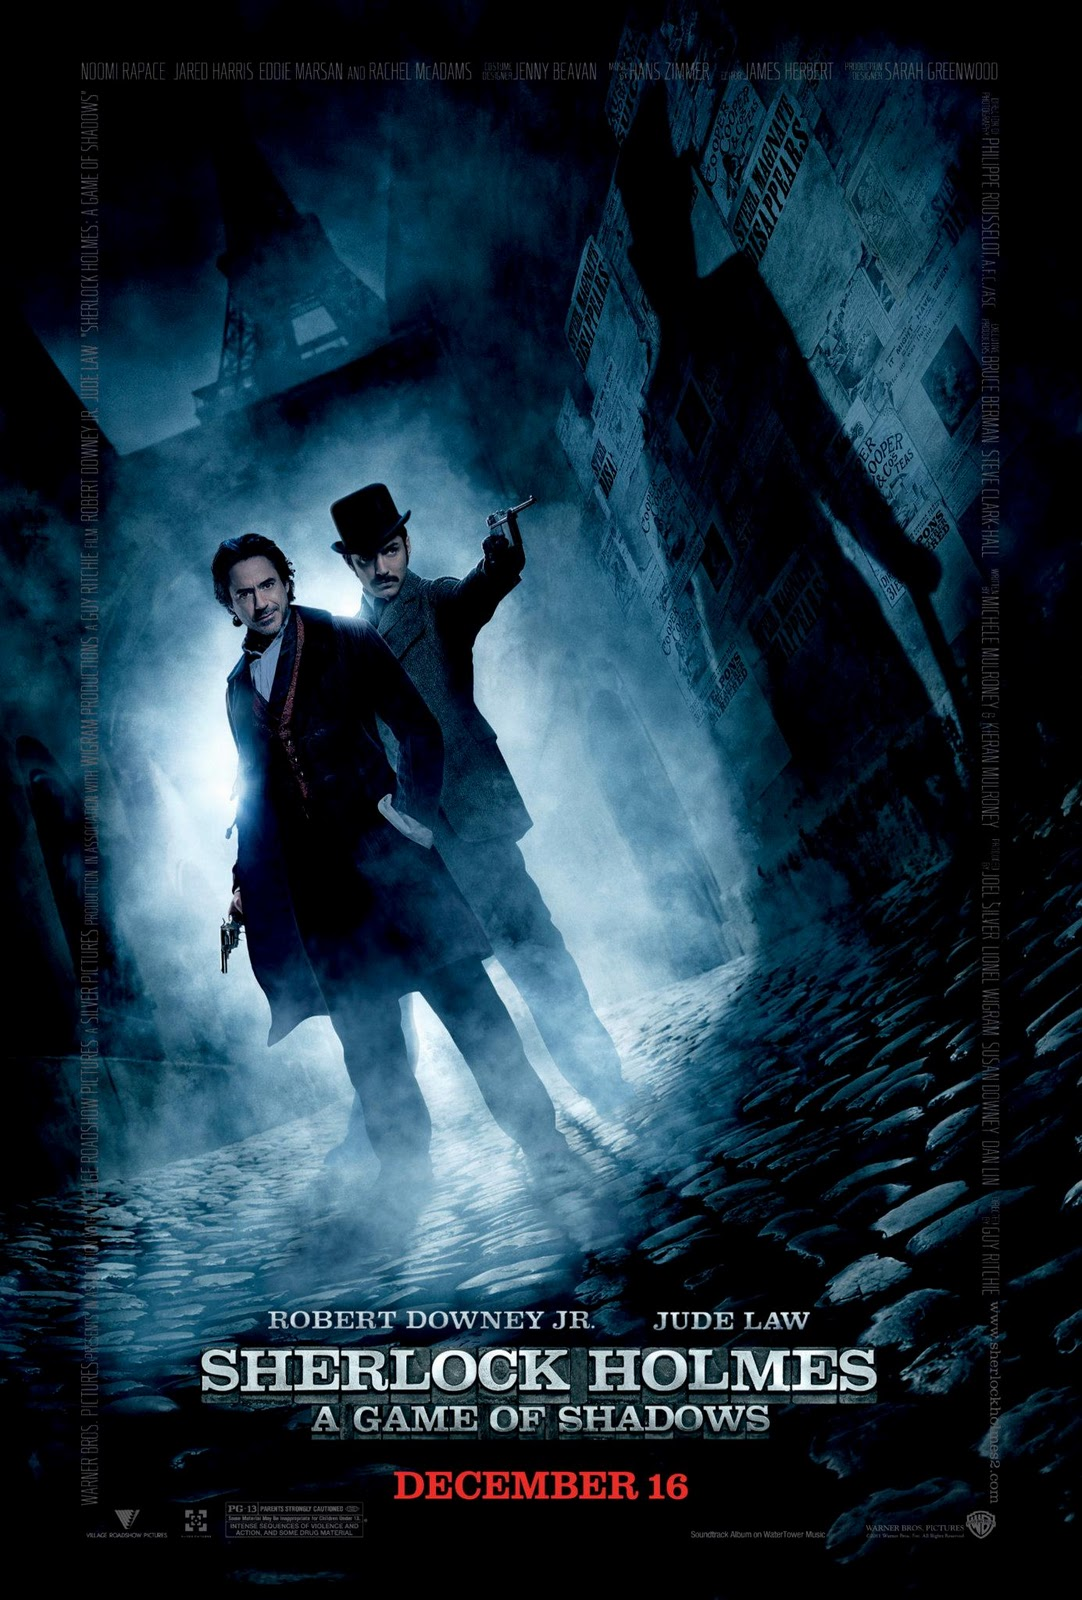 http://2xmc.files.wordpress.com/2012/02/sherlock-holmes-game-of-shadows-whysoblu-com-poster.jpg